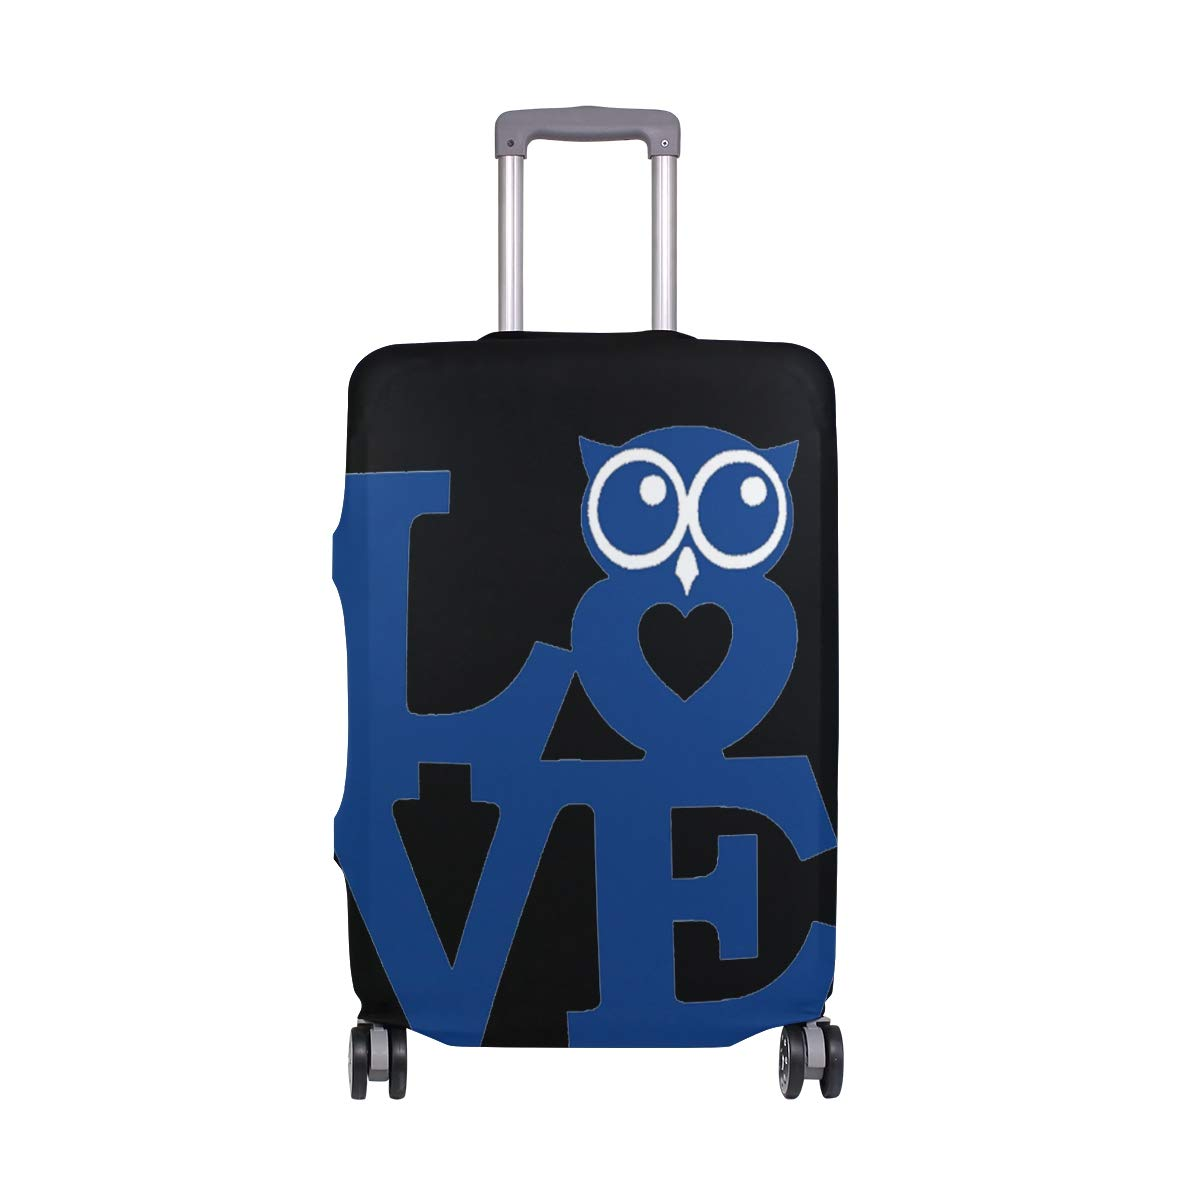 Travel Luggage Cover DIY Prints Protector Suitcase Baggage Fit 18-32 inch - Pet Cartoon Owl Love Blue